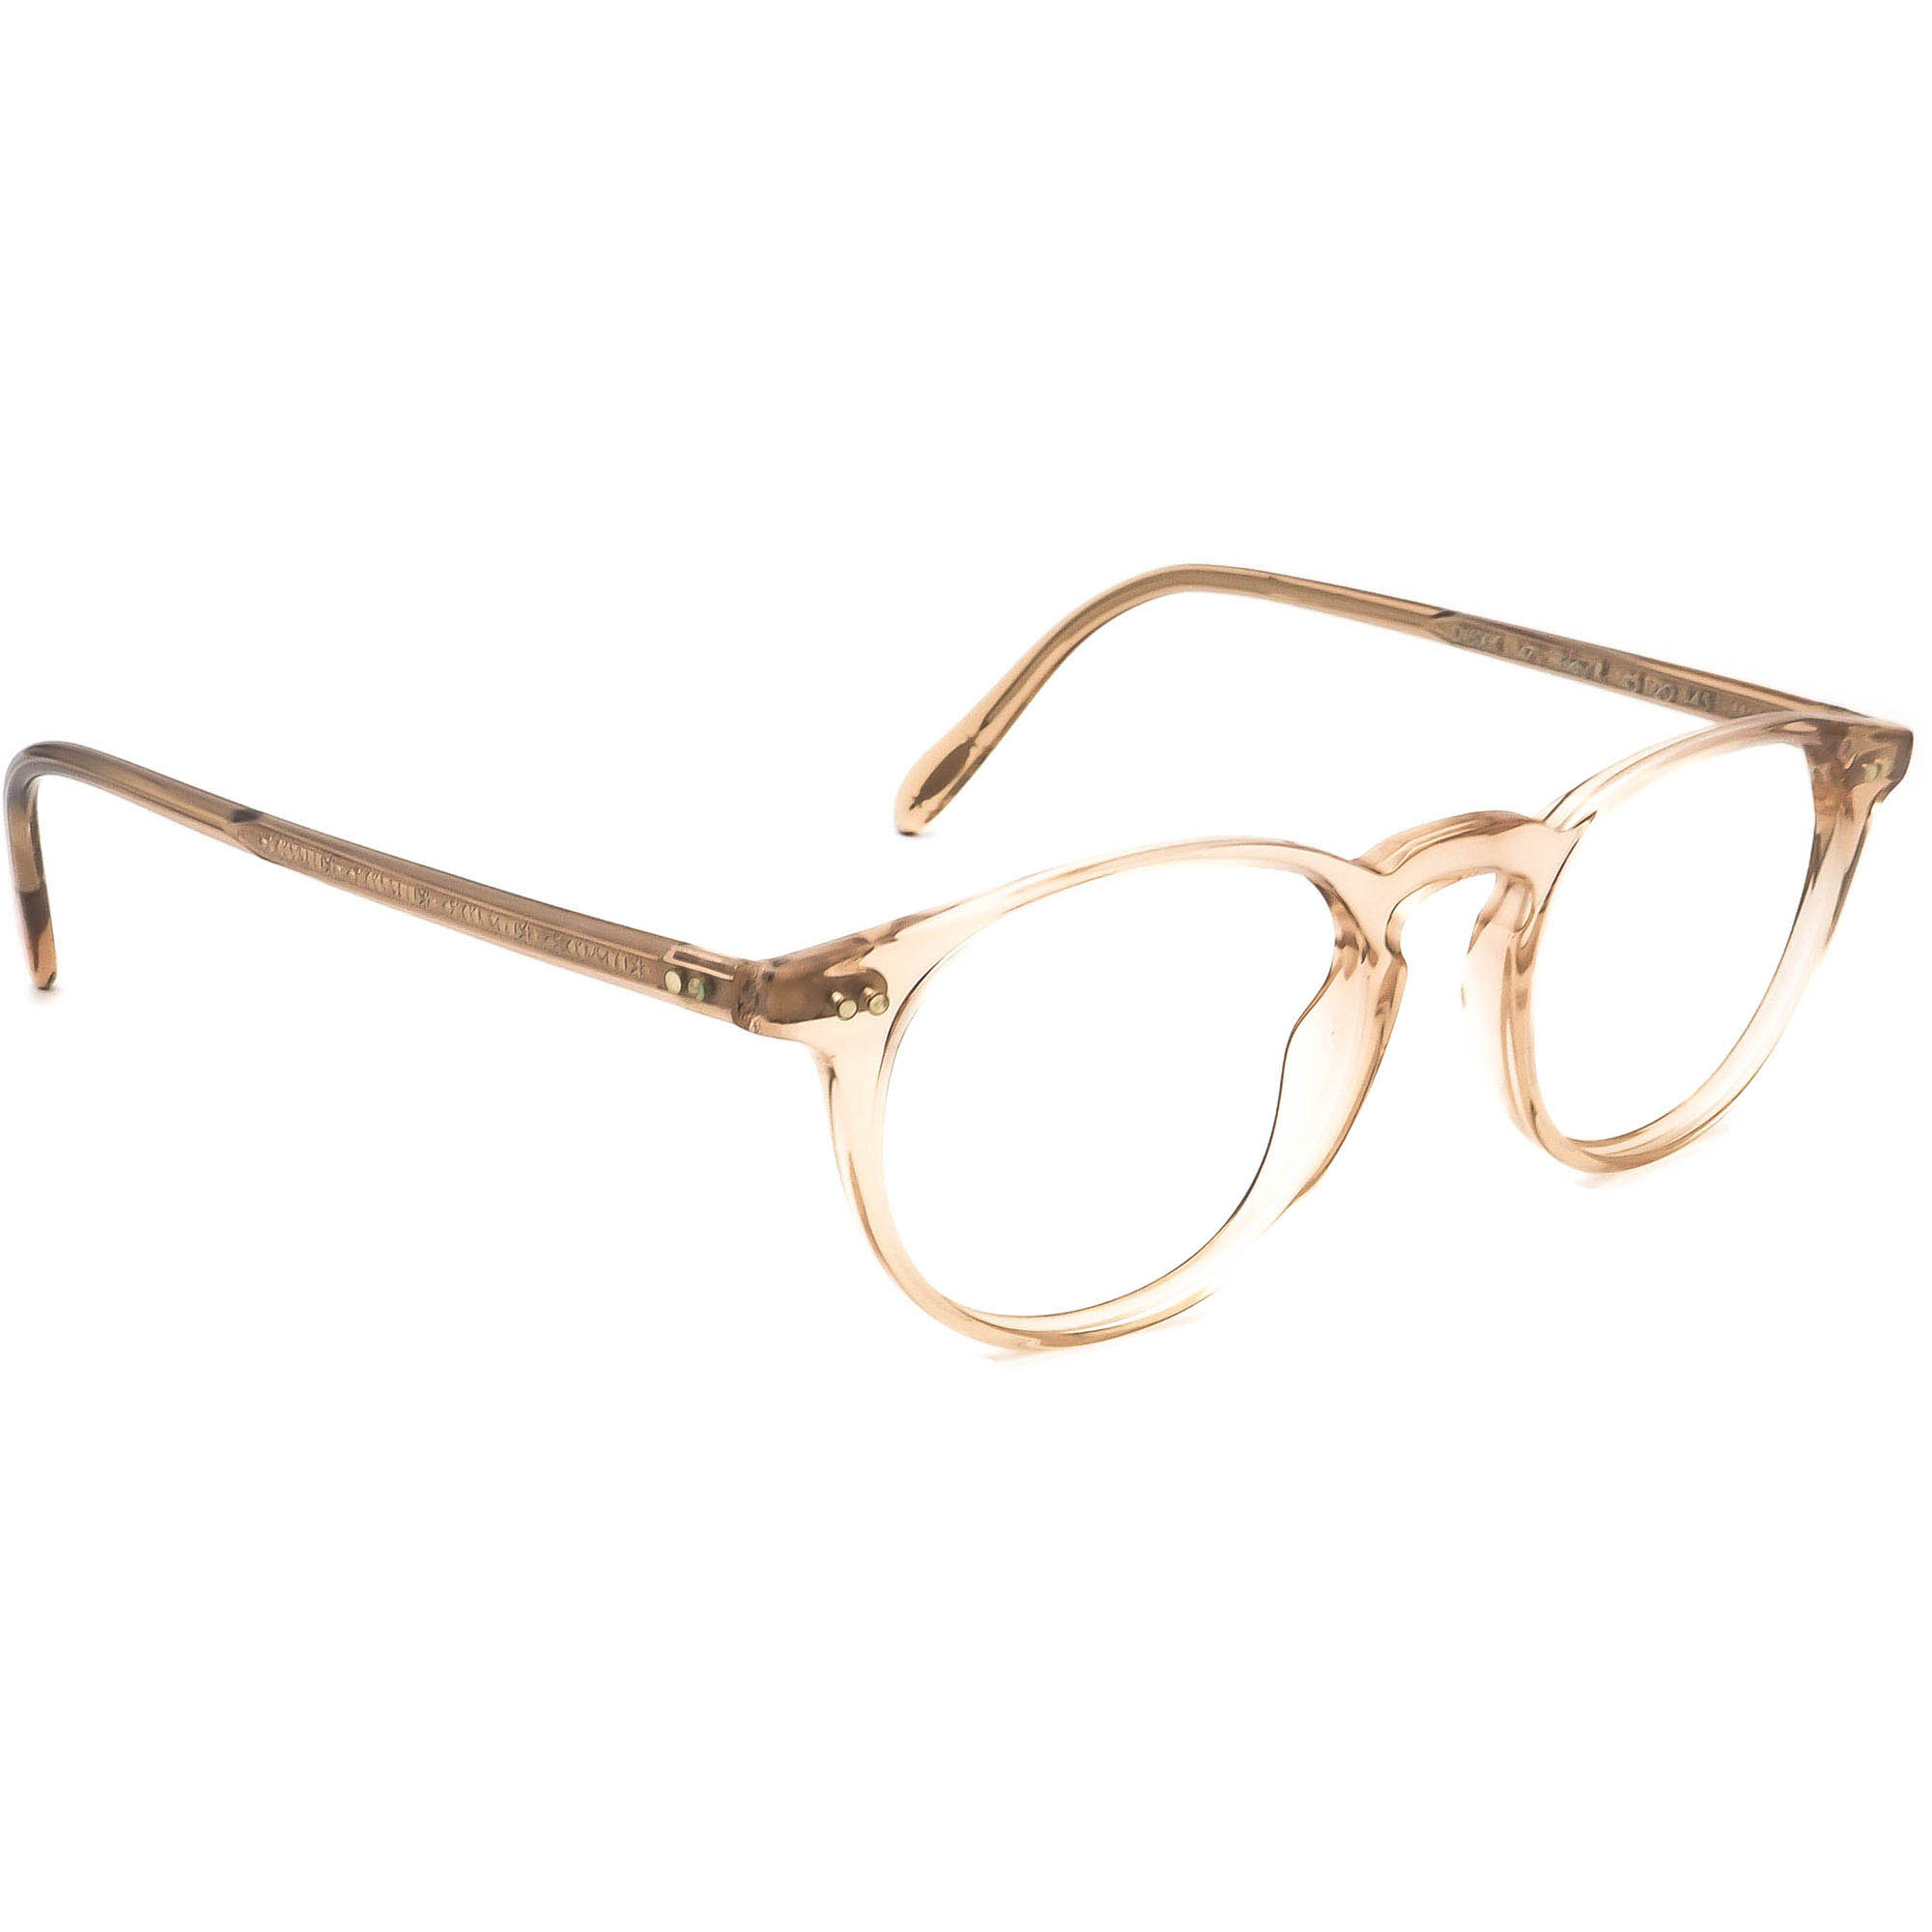 Oliver Peoples OV5004 1471 Riley R Eyeglasses